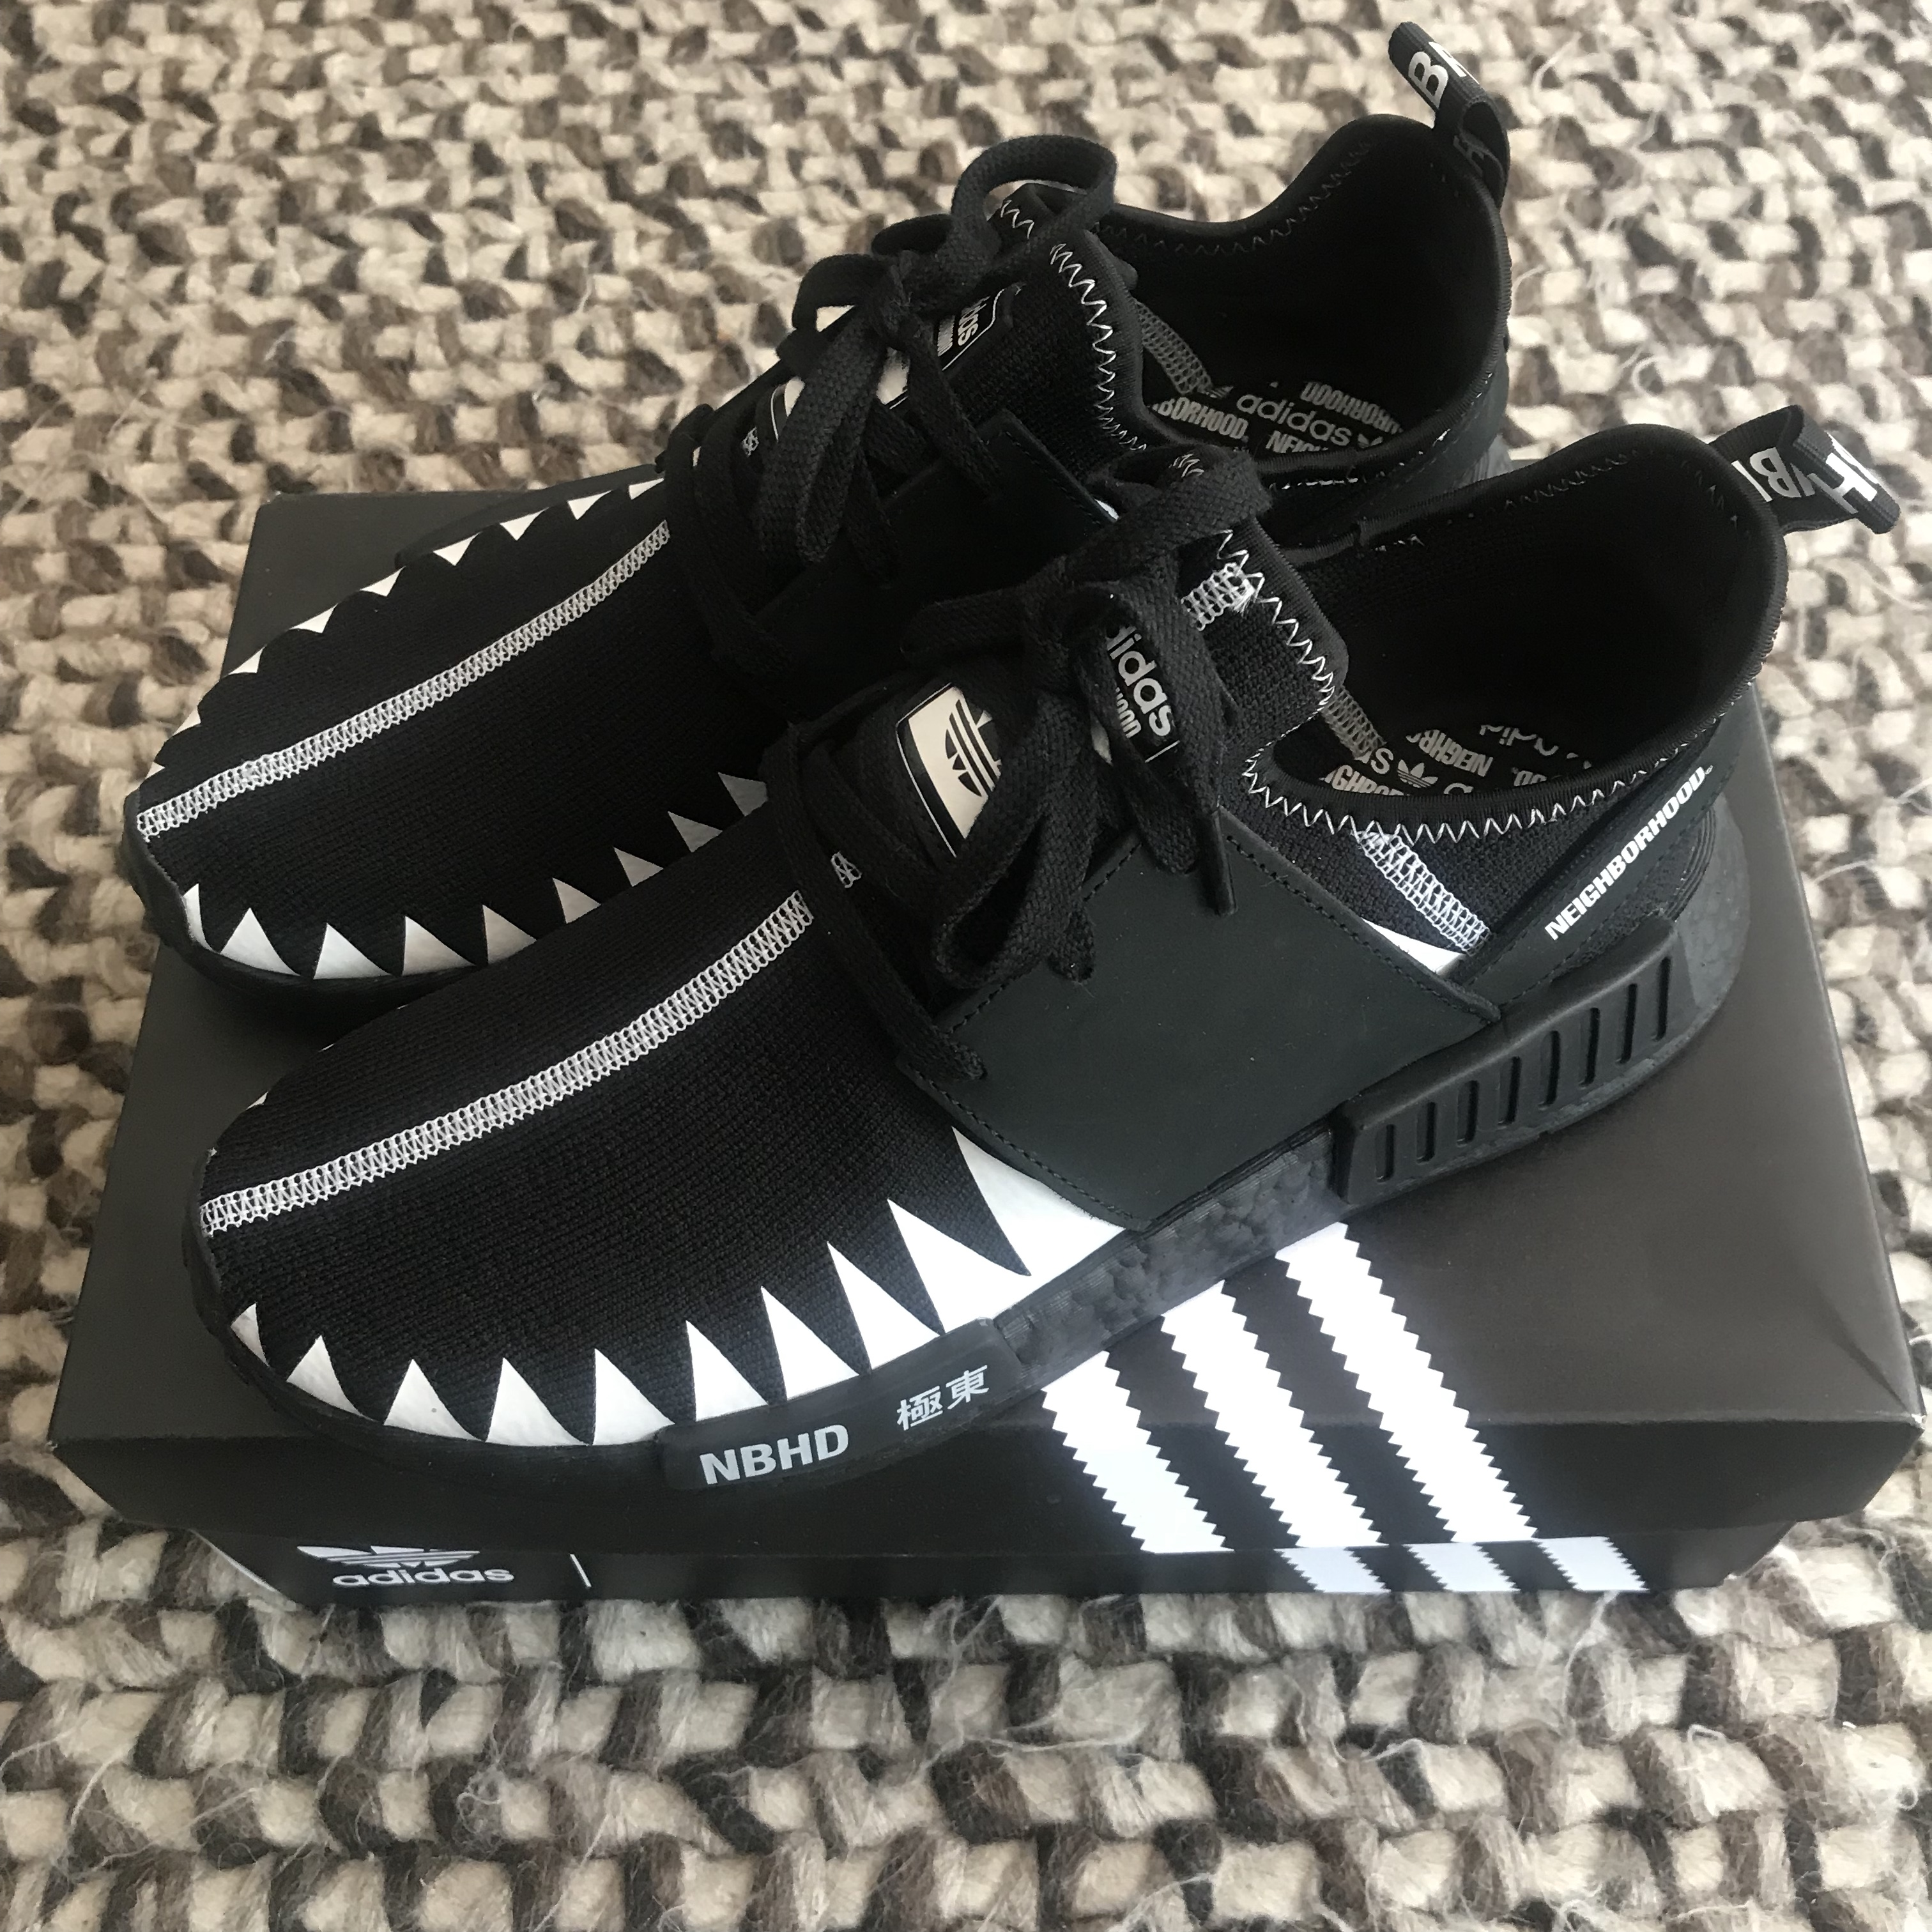 timeless design ef697 30b54 Adidas X neighborhood nmd R1 pk UK 9/ us 9.5 Brand... - Depop